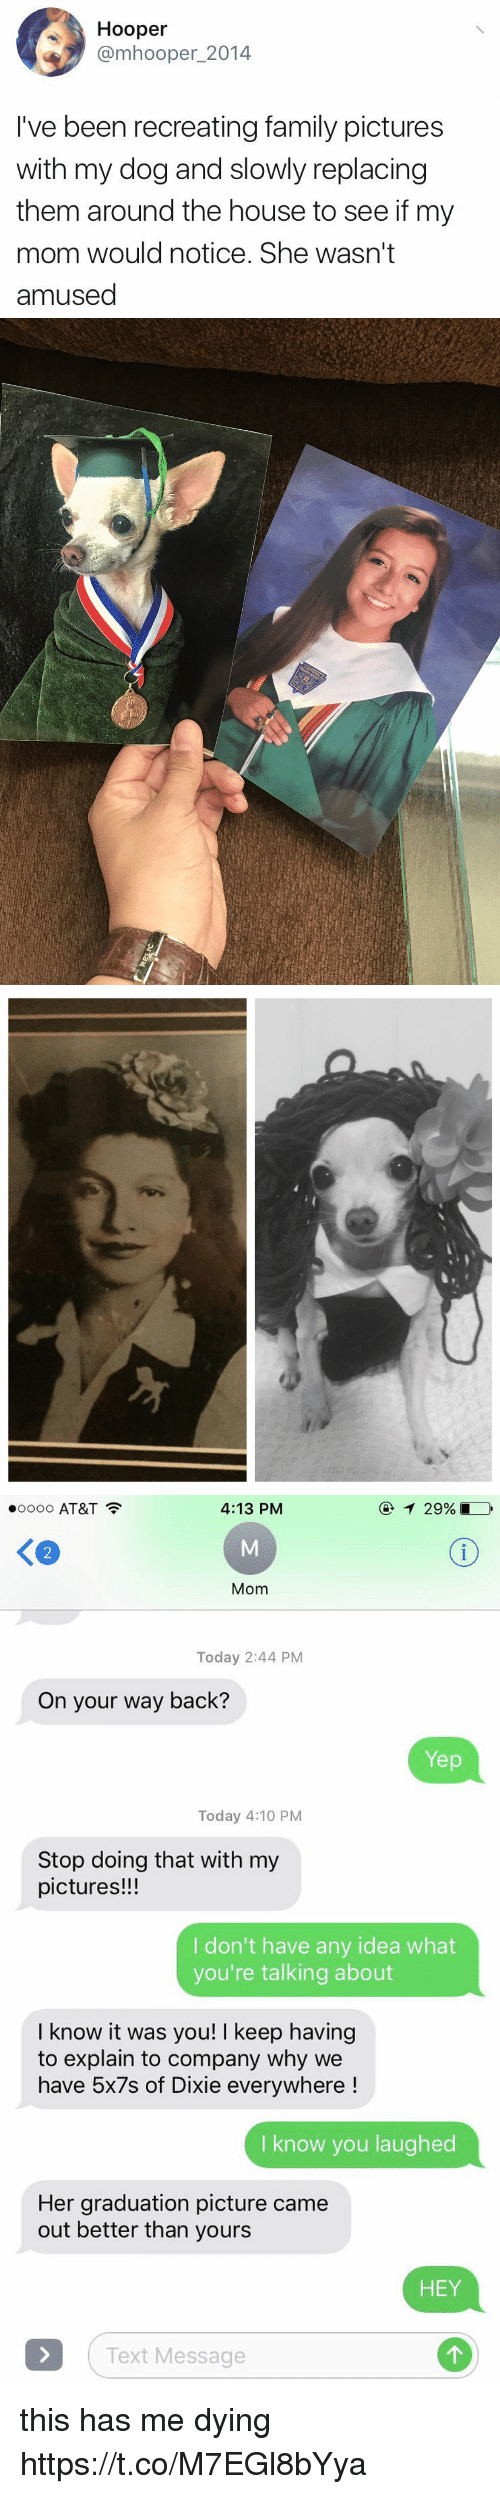 relic: Hooper  omhooper 2014  I've been recreating family pictures  with my dog and slowly replacing  them around the house to see if my  mom would notice. She wasn't  amused   RELIC   T 29%,  4:13 PM  oooo AT&T  Mom  Today 2:44 PM  On your way back?  Yep  Today 4:10 PM  Stop doing that with my  pictures!!!  I don't have any idea what  you're talking about  I know it was you! I keep having  to explain to company why we  have 5x7s of Dixie everywhere  I know you laughed  Her graduation picture came  out better than yours  HEY  Text Message this has me dying https://t.co/M7EGl8bYya